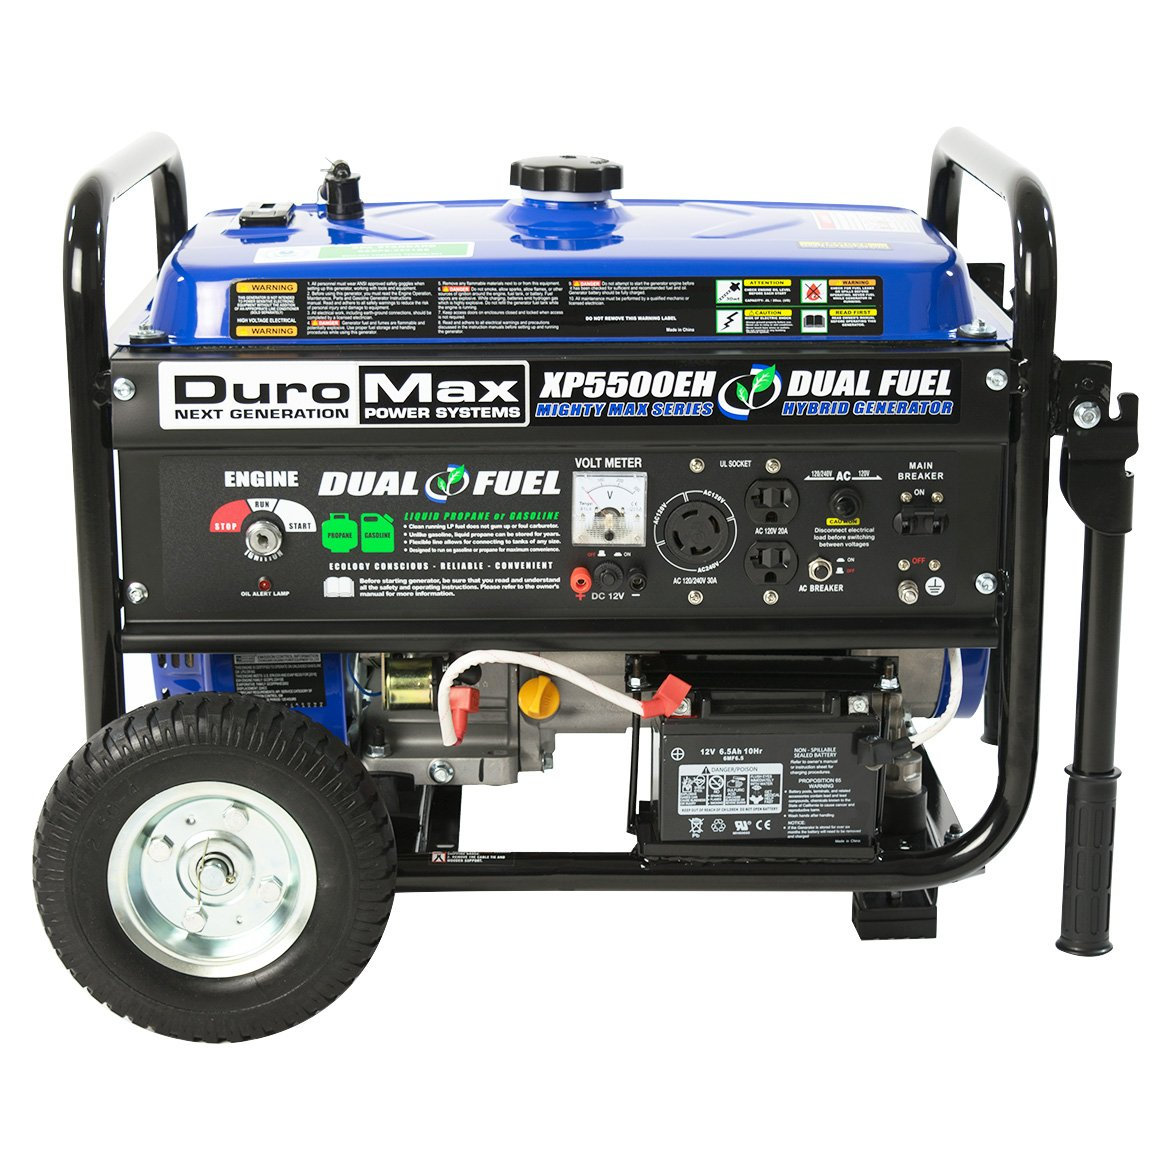 Duromax XP5500EH Dual Fuel 5500 Watt Electric Start